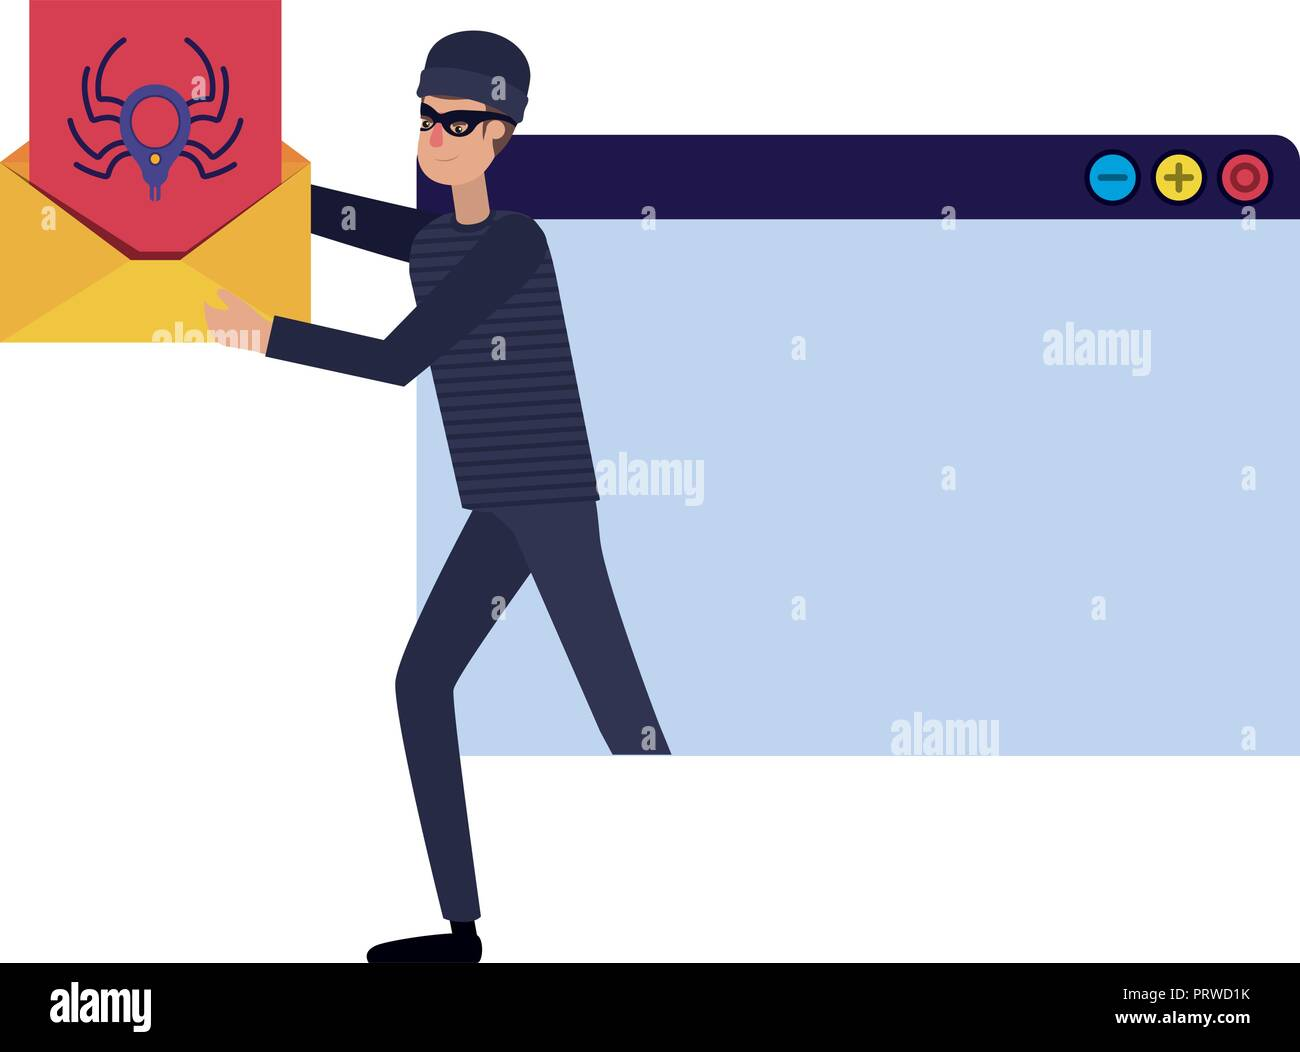 hacker stealing information avatar character - Stock Image